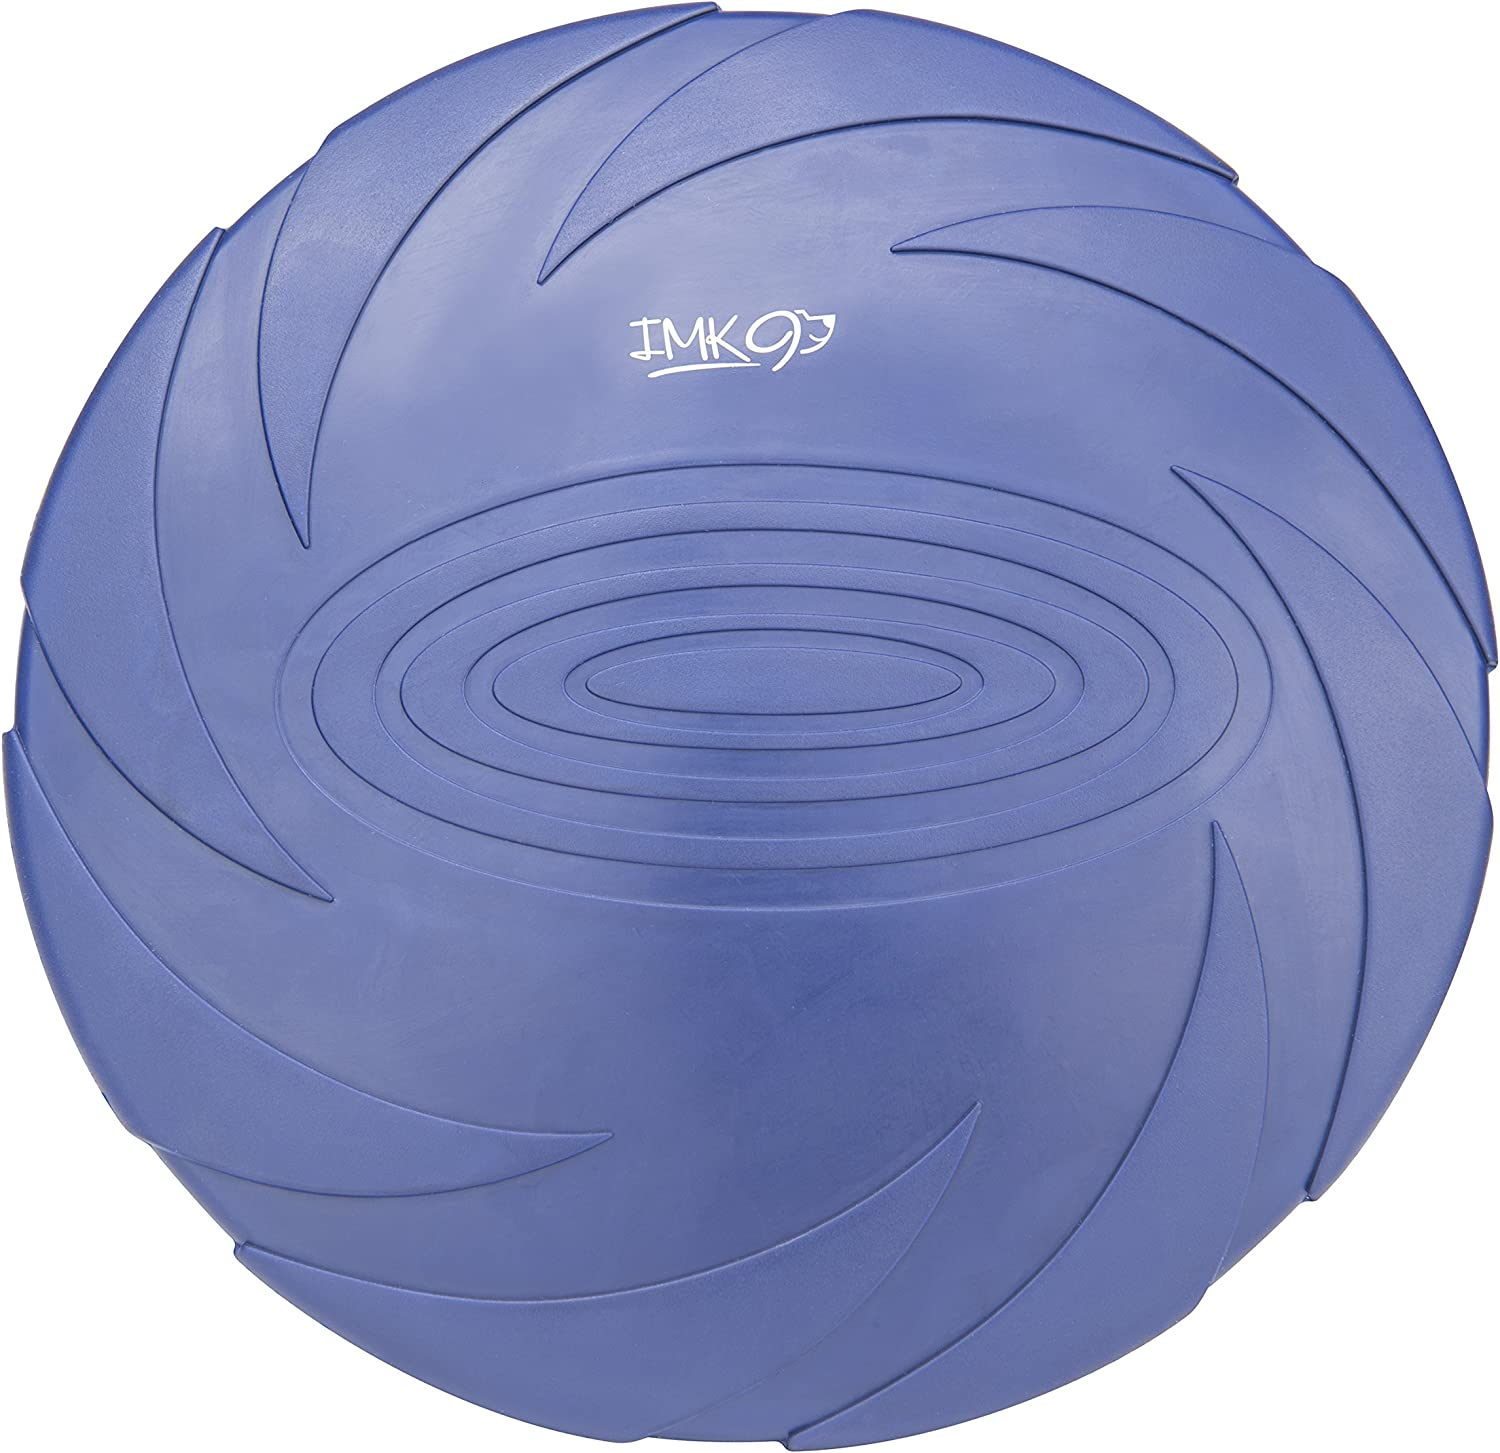 Dog Frisbee Indestructible Disc - for Large Dogs - Soft Rubber Frisbees for Training – Heavy Duty Durable Freezbee for Pets – Lightweight, Interactive Flying Toy for Fetch, Tug of War, Catch